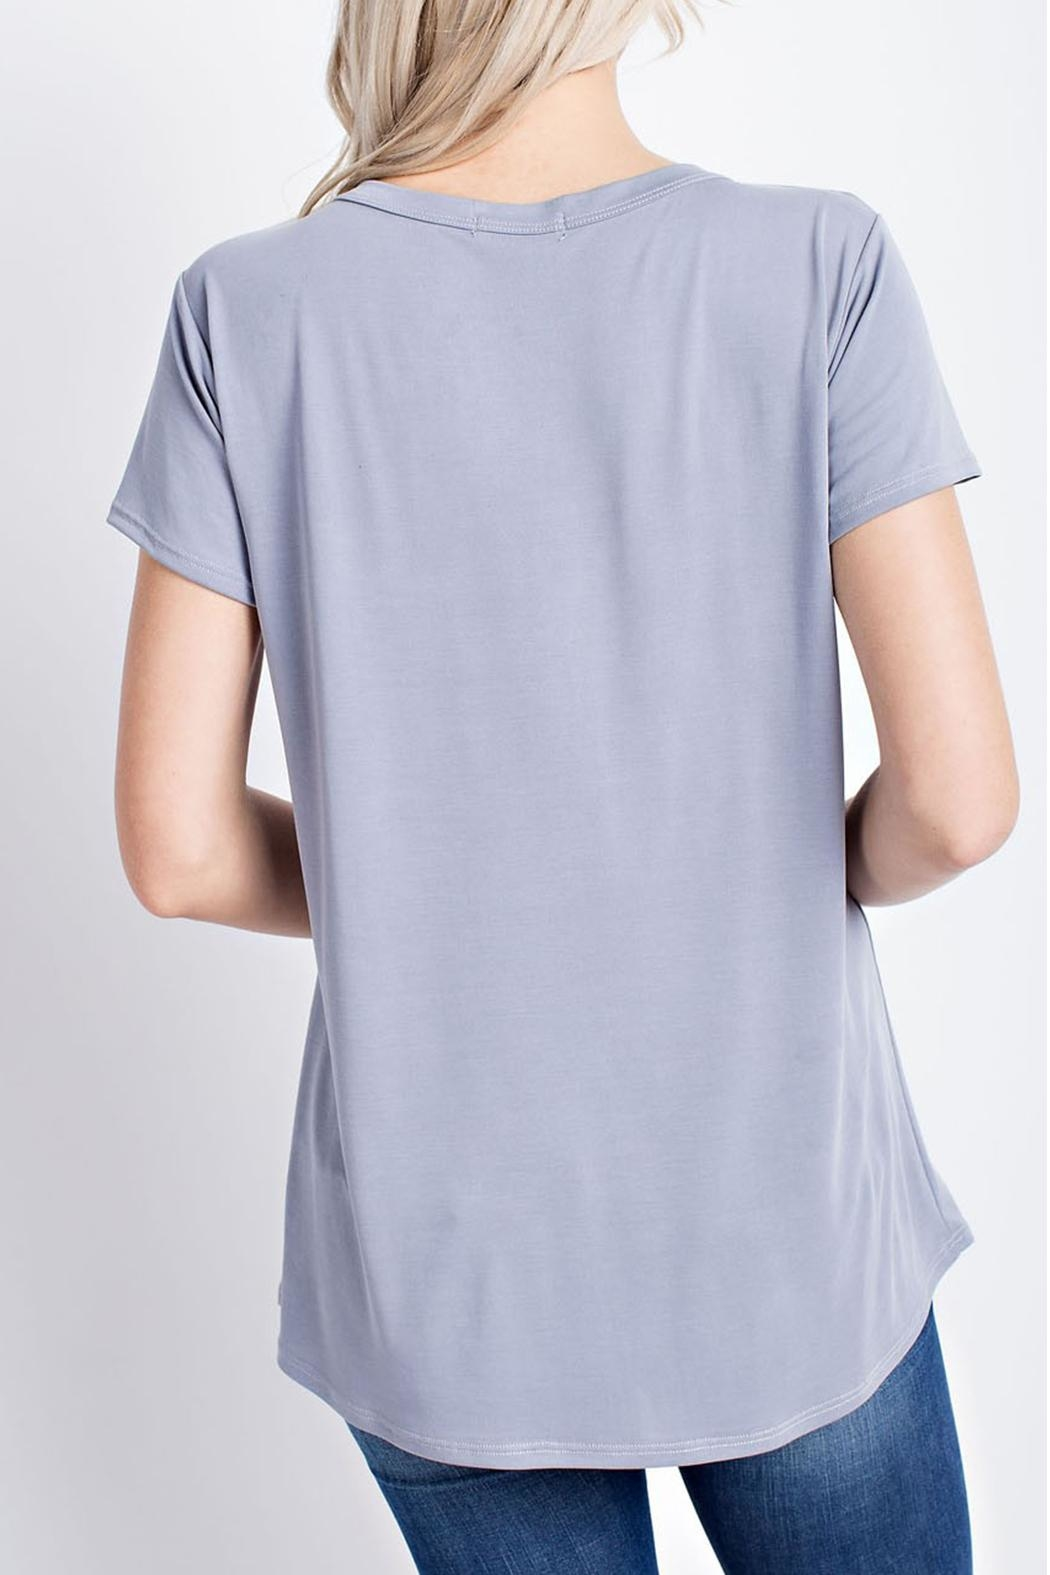 12pm by Mon Ami Criss-Cross V Neck - Side Cropped Image